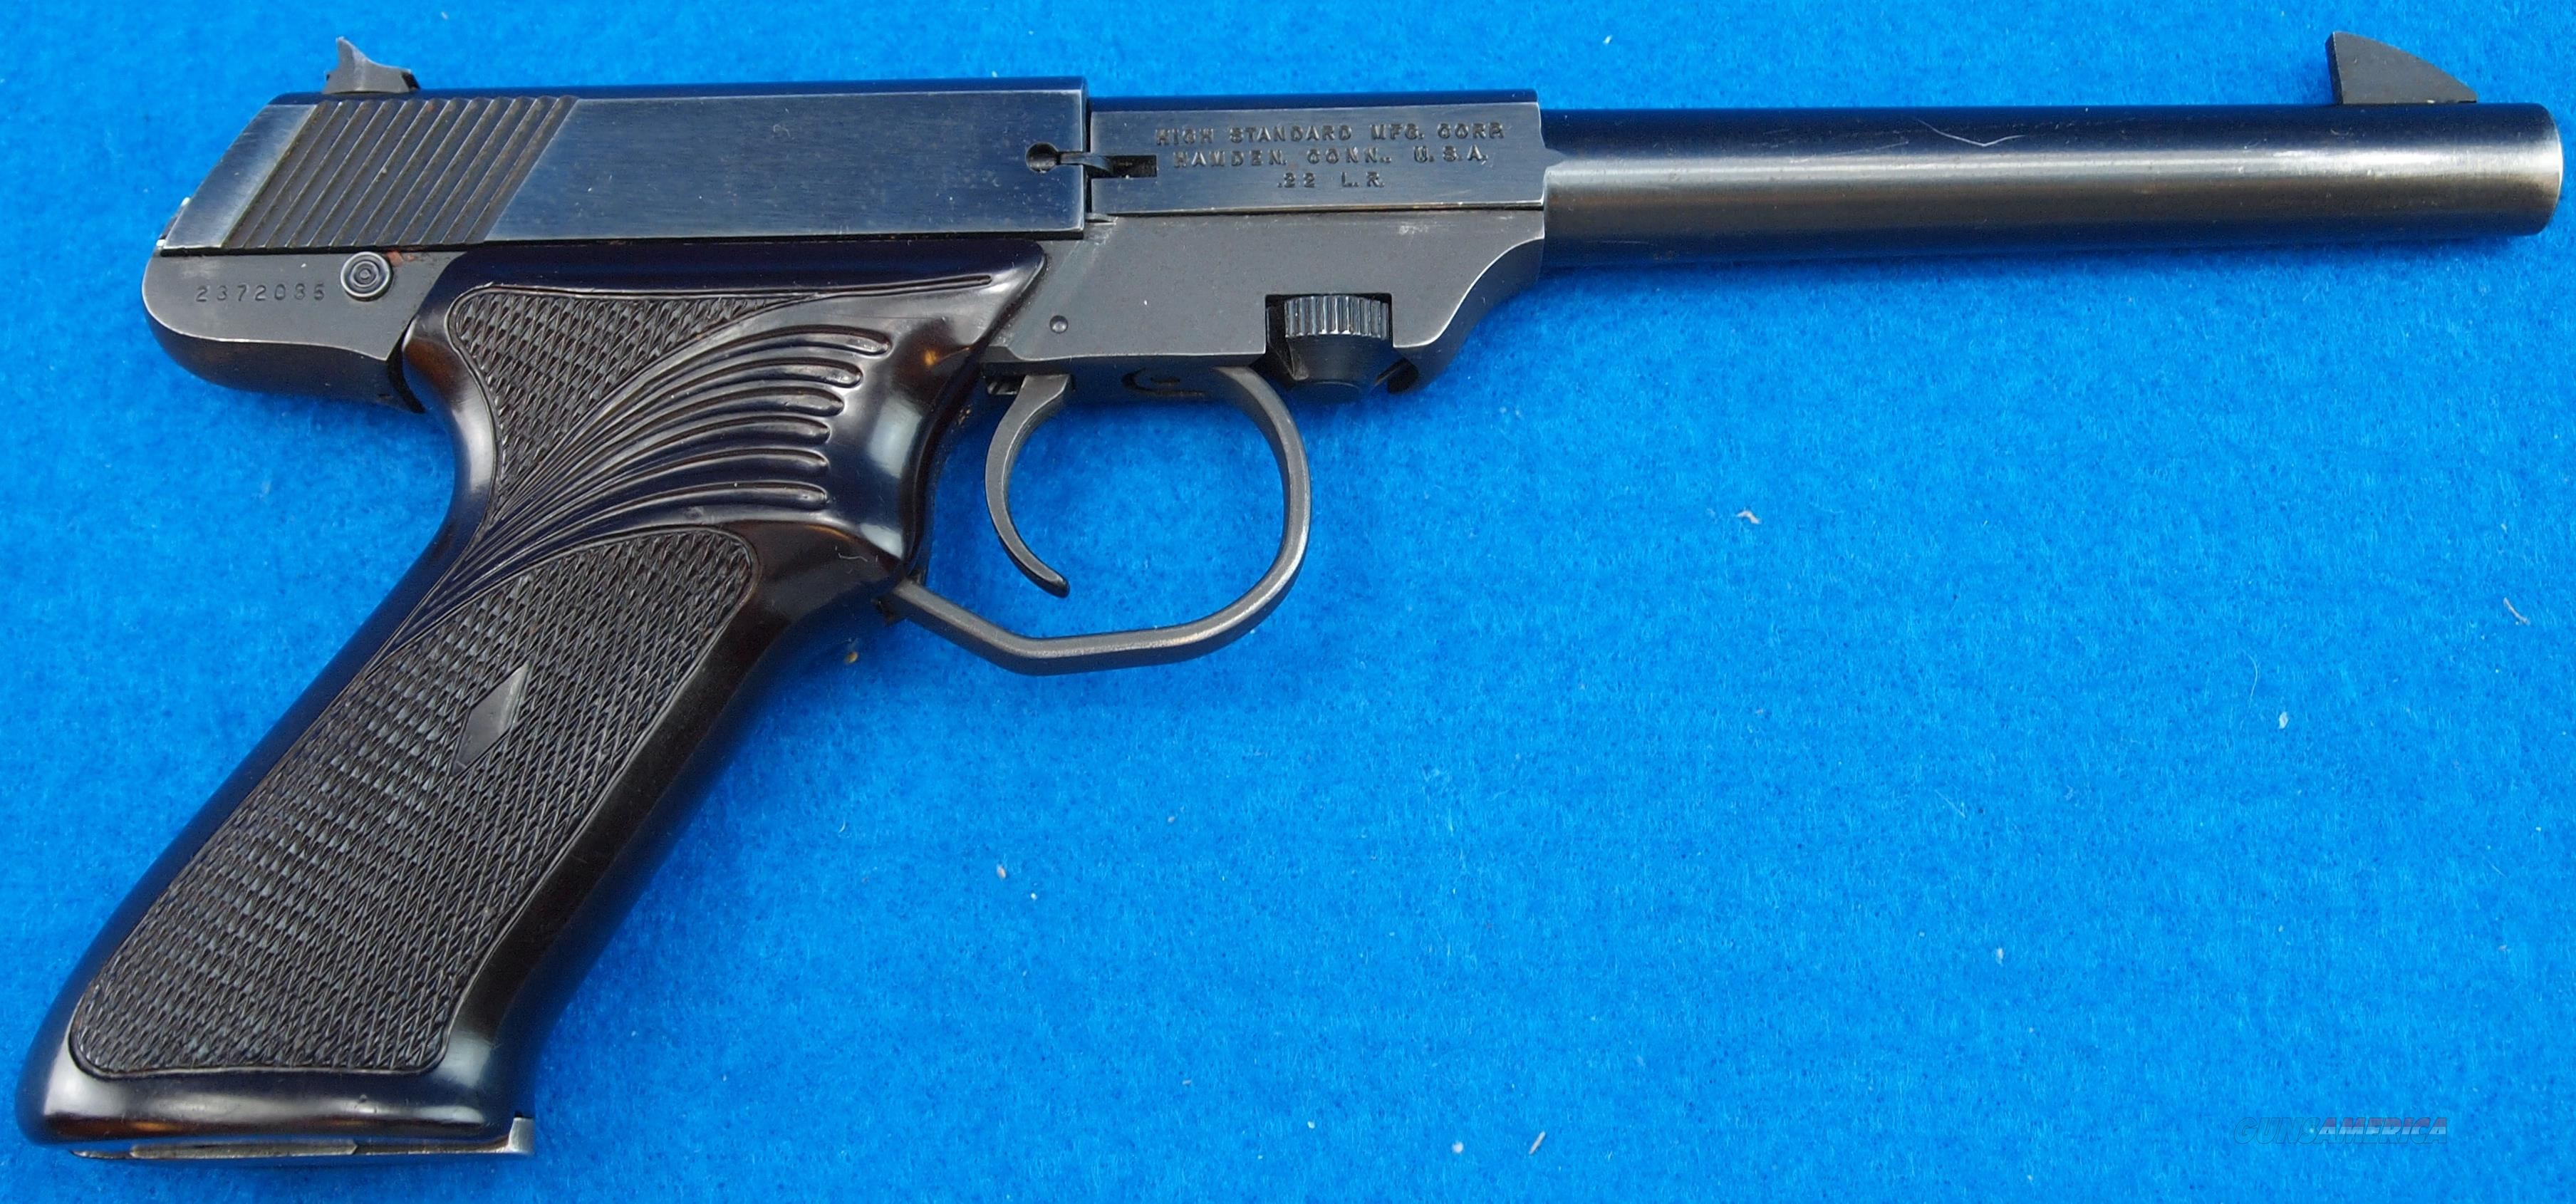 "HIGH STANDARD M-101 DURA-MATIC ""THE PLINKER"" .22LR  Guns > Pistols > High Standard Pistols"